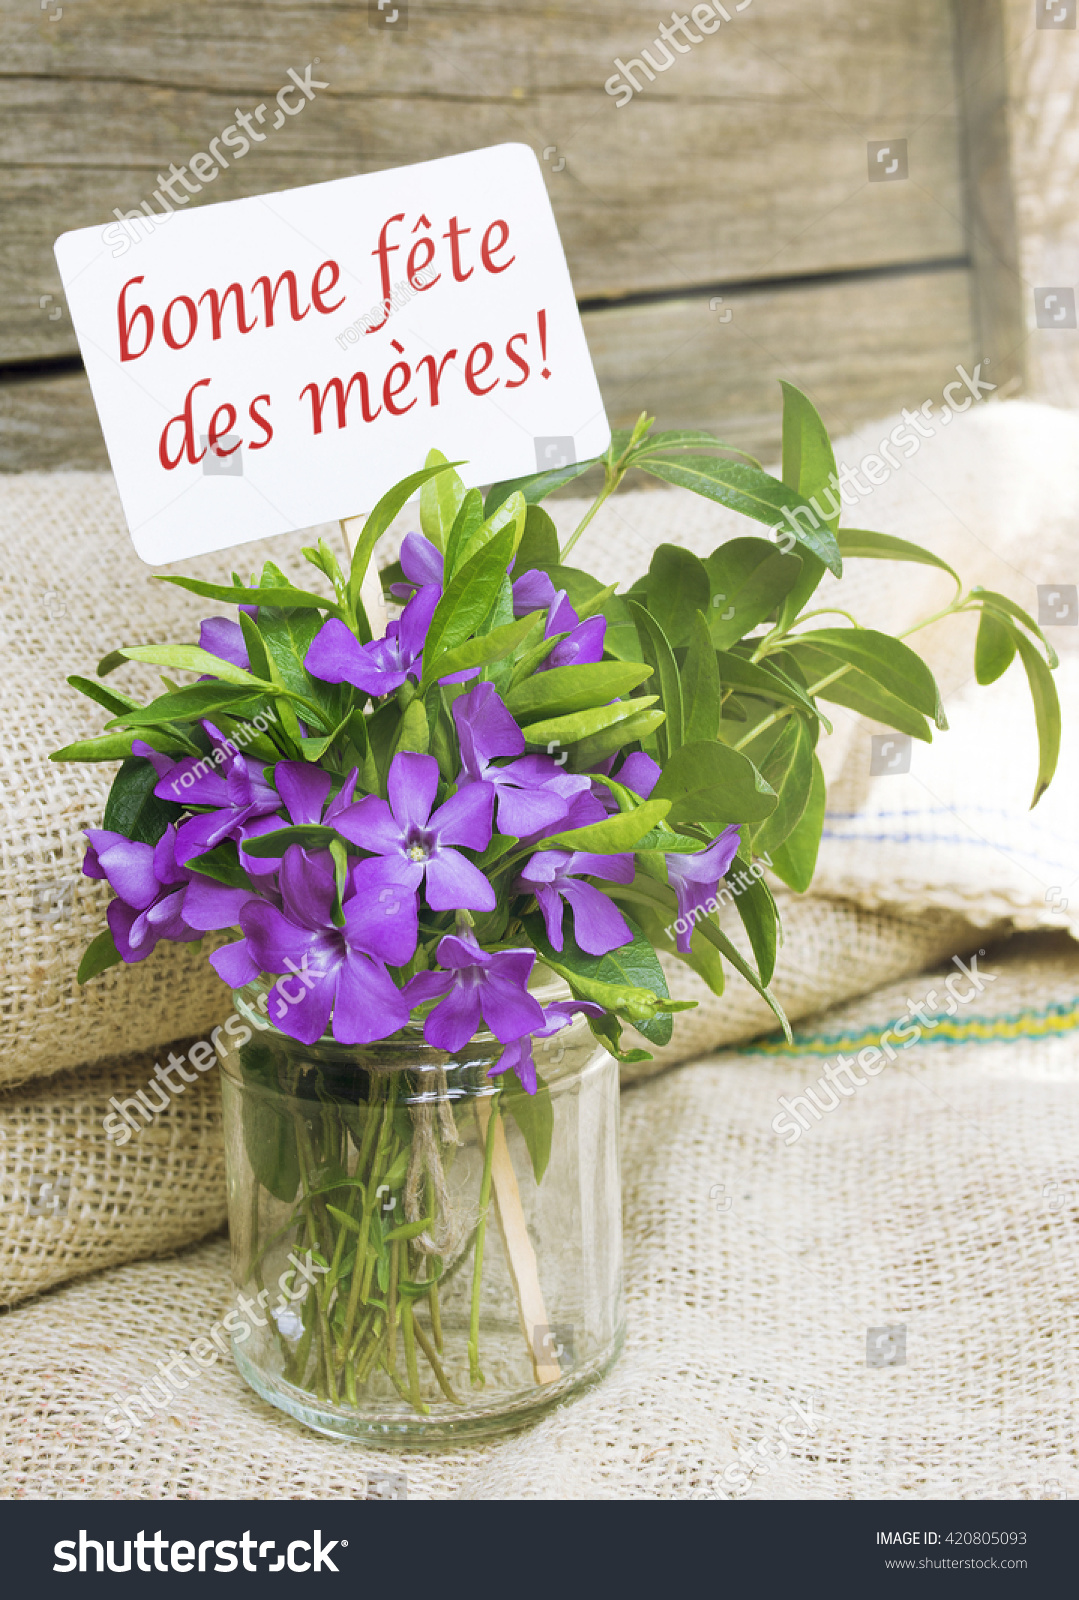 Enjoy Mothers Day French Flower Bouquet Stock Photo 420805093 ...